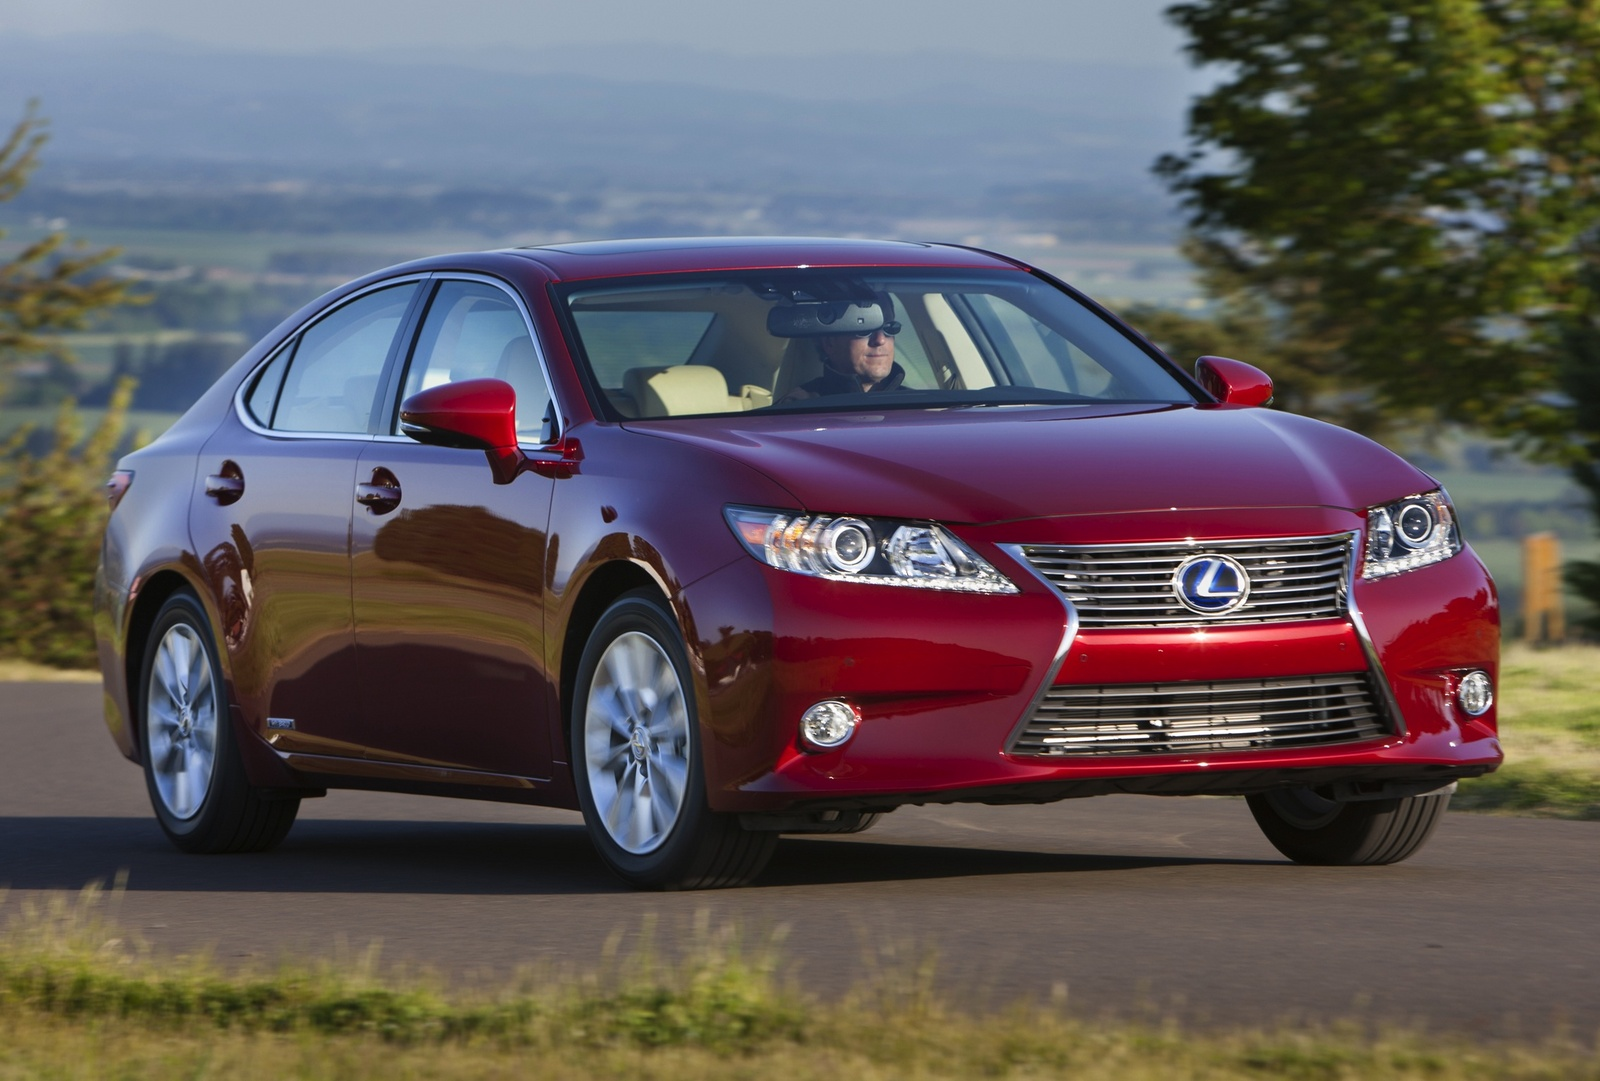 2014 lexus es 300h review cargurus. Black Bedroom Furniture Sets. Home Design Ideas